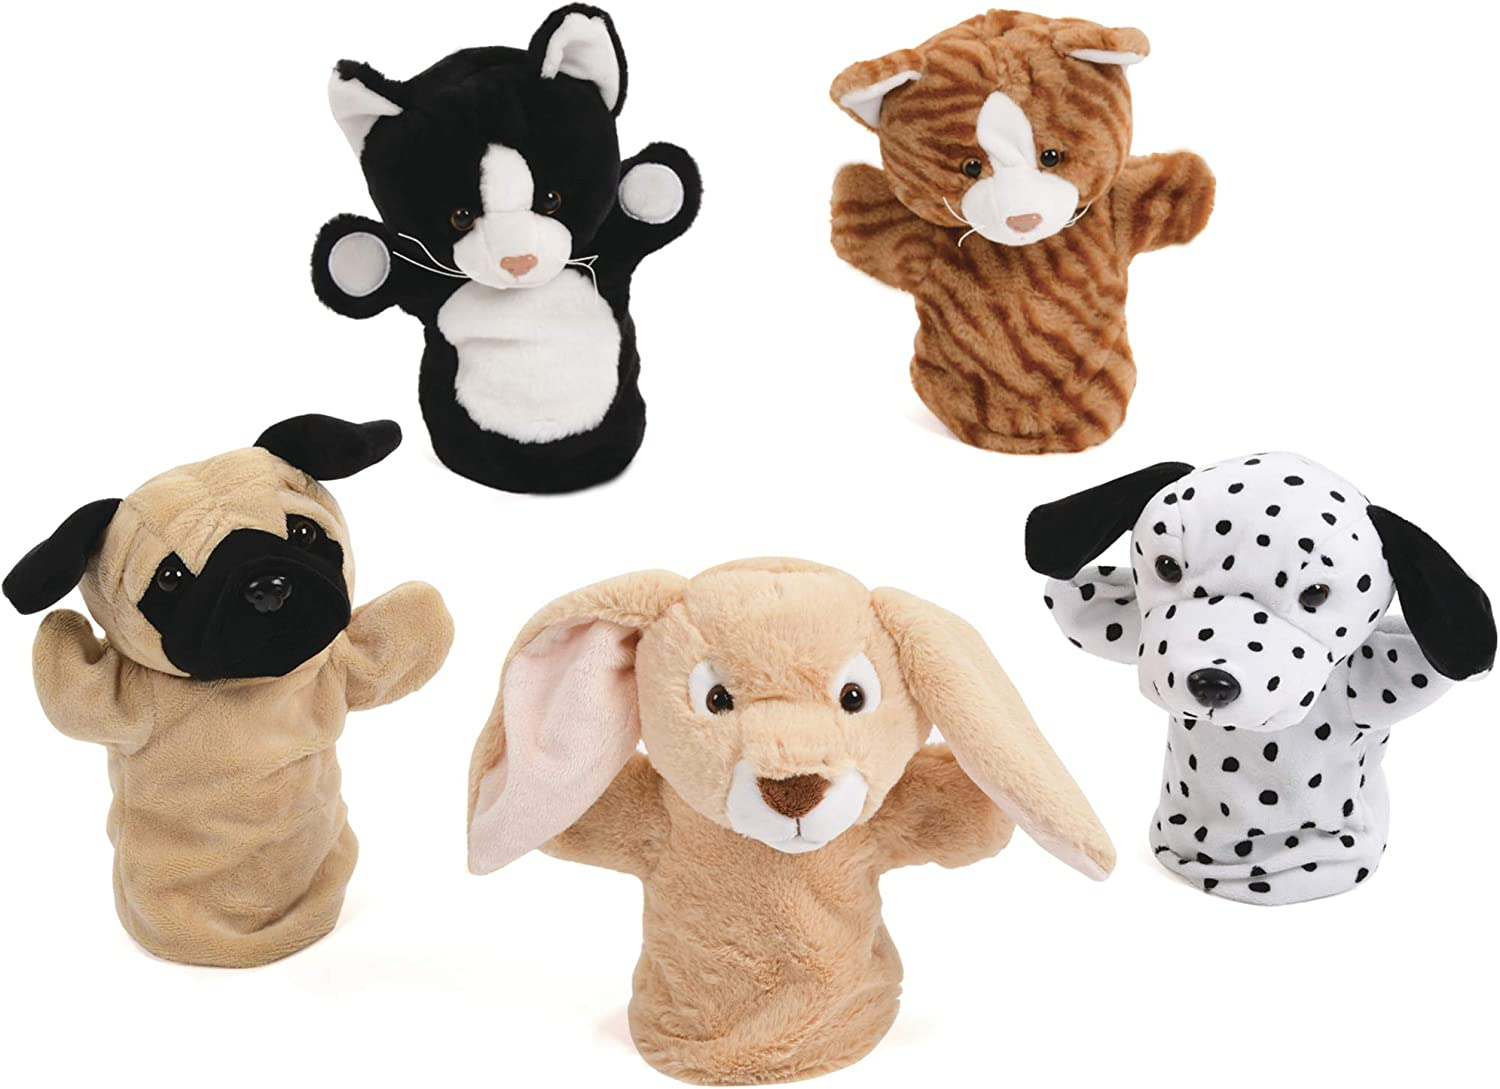 Pet Hand Puppet Set 36yrs, Lop Rabbit, Black and White Cat, Ginger Cat, Dalmation and Pug Dog x5 Hand Puppets Soft Props Role Play, Story and Rhyme Telling